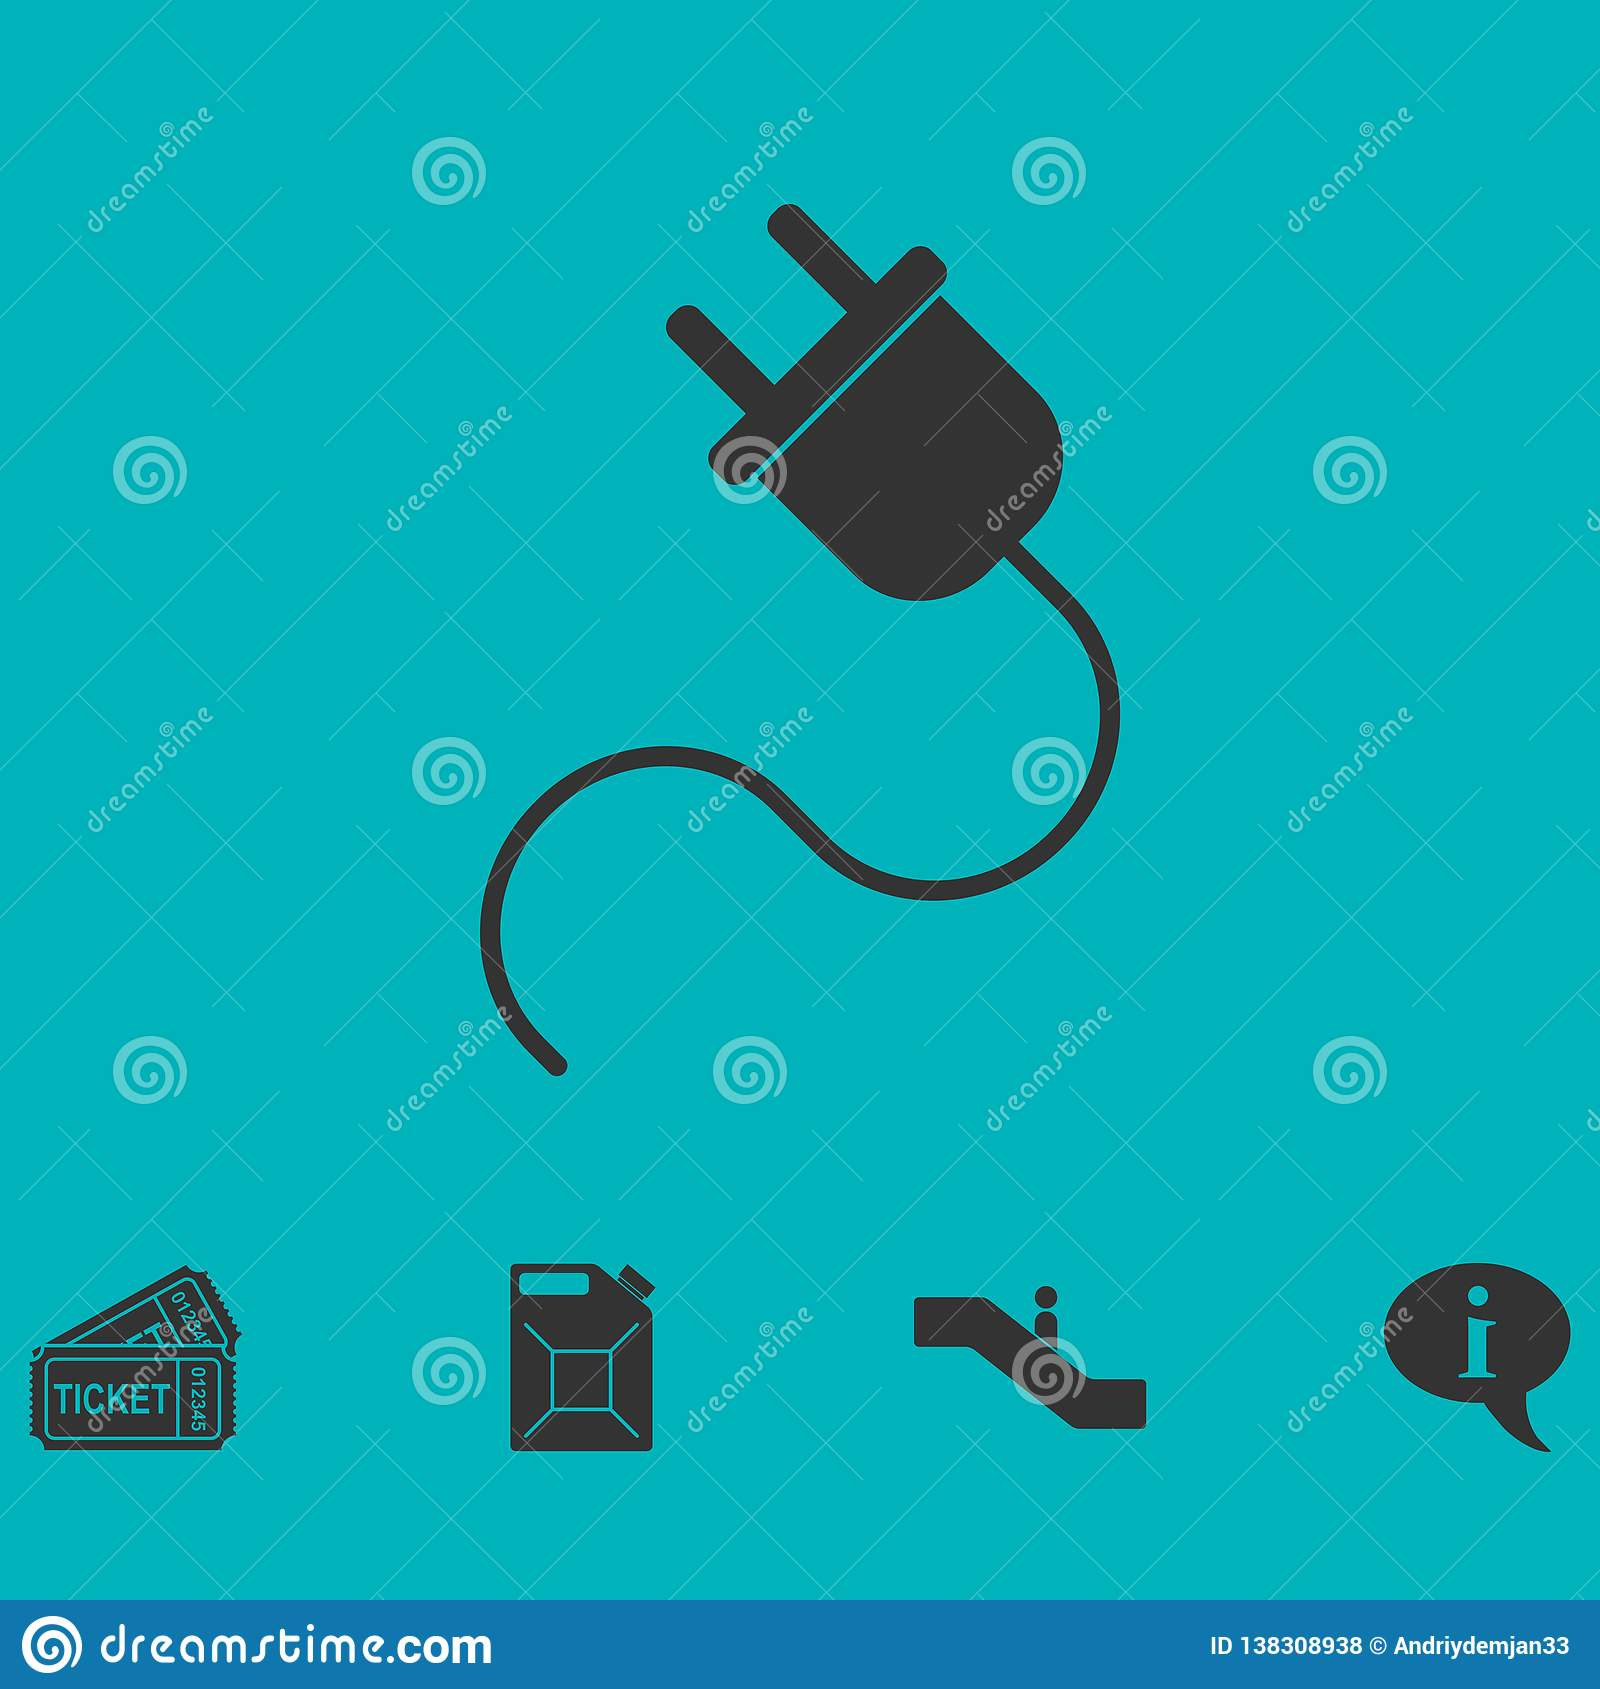 Power cord icon flat